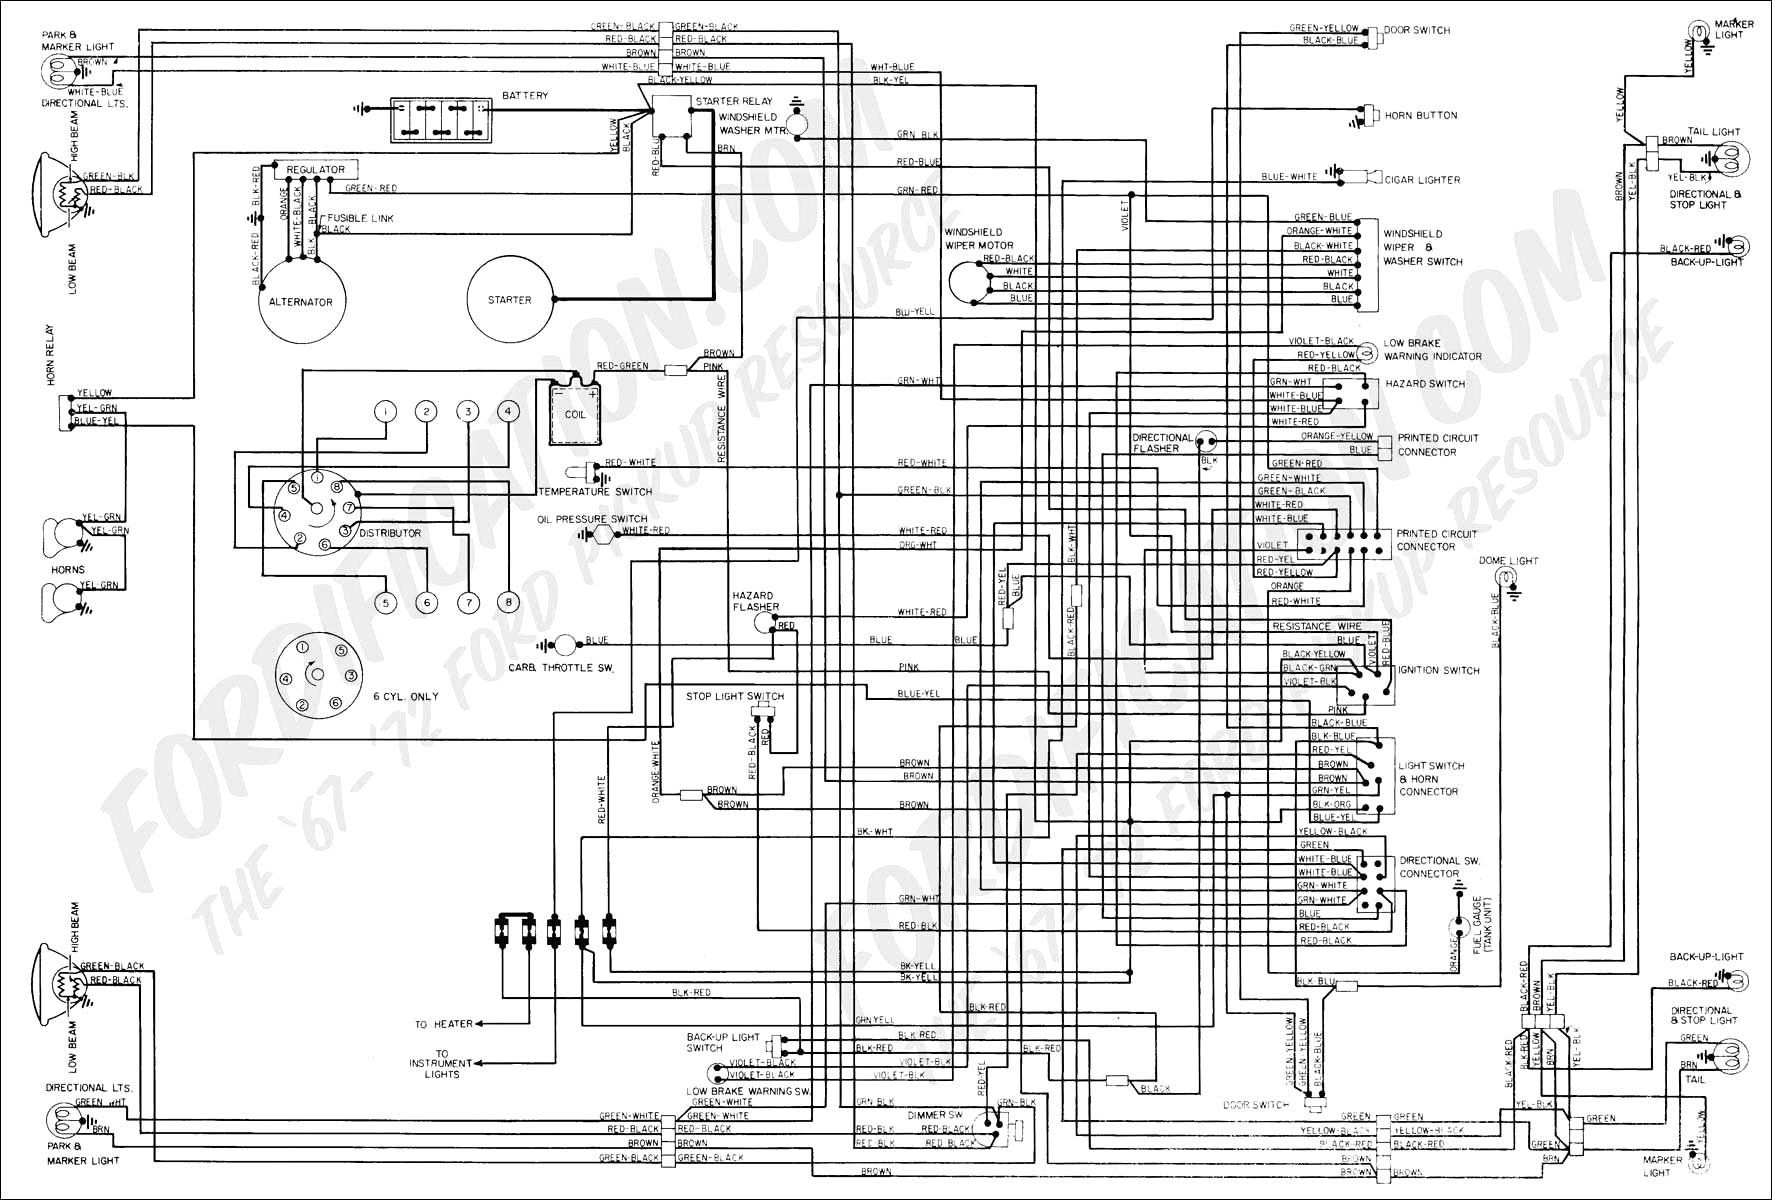 2006 ford f350 wiring diagram data wiring diagrams \u2022 with ford 1997 Ford Expedition Stereo Wiring Diagram